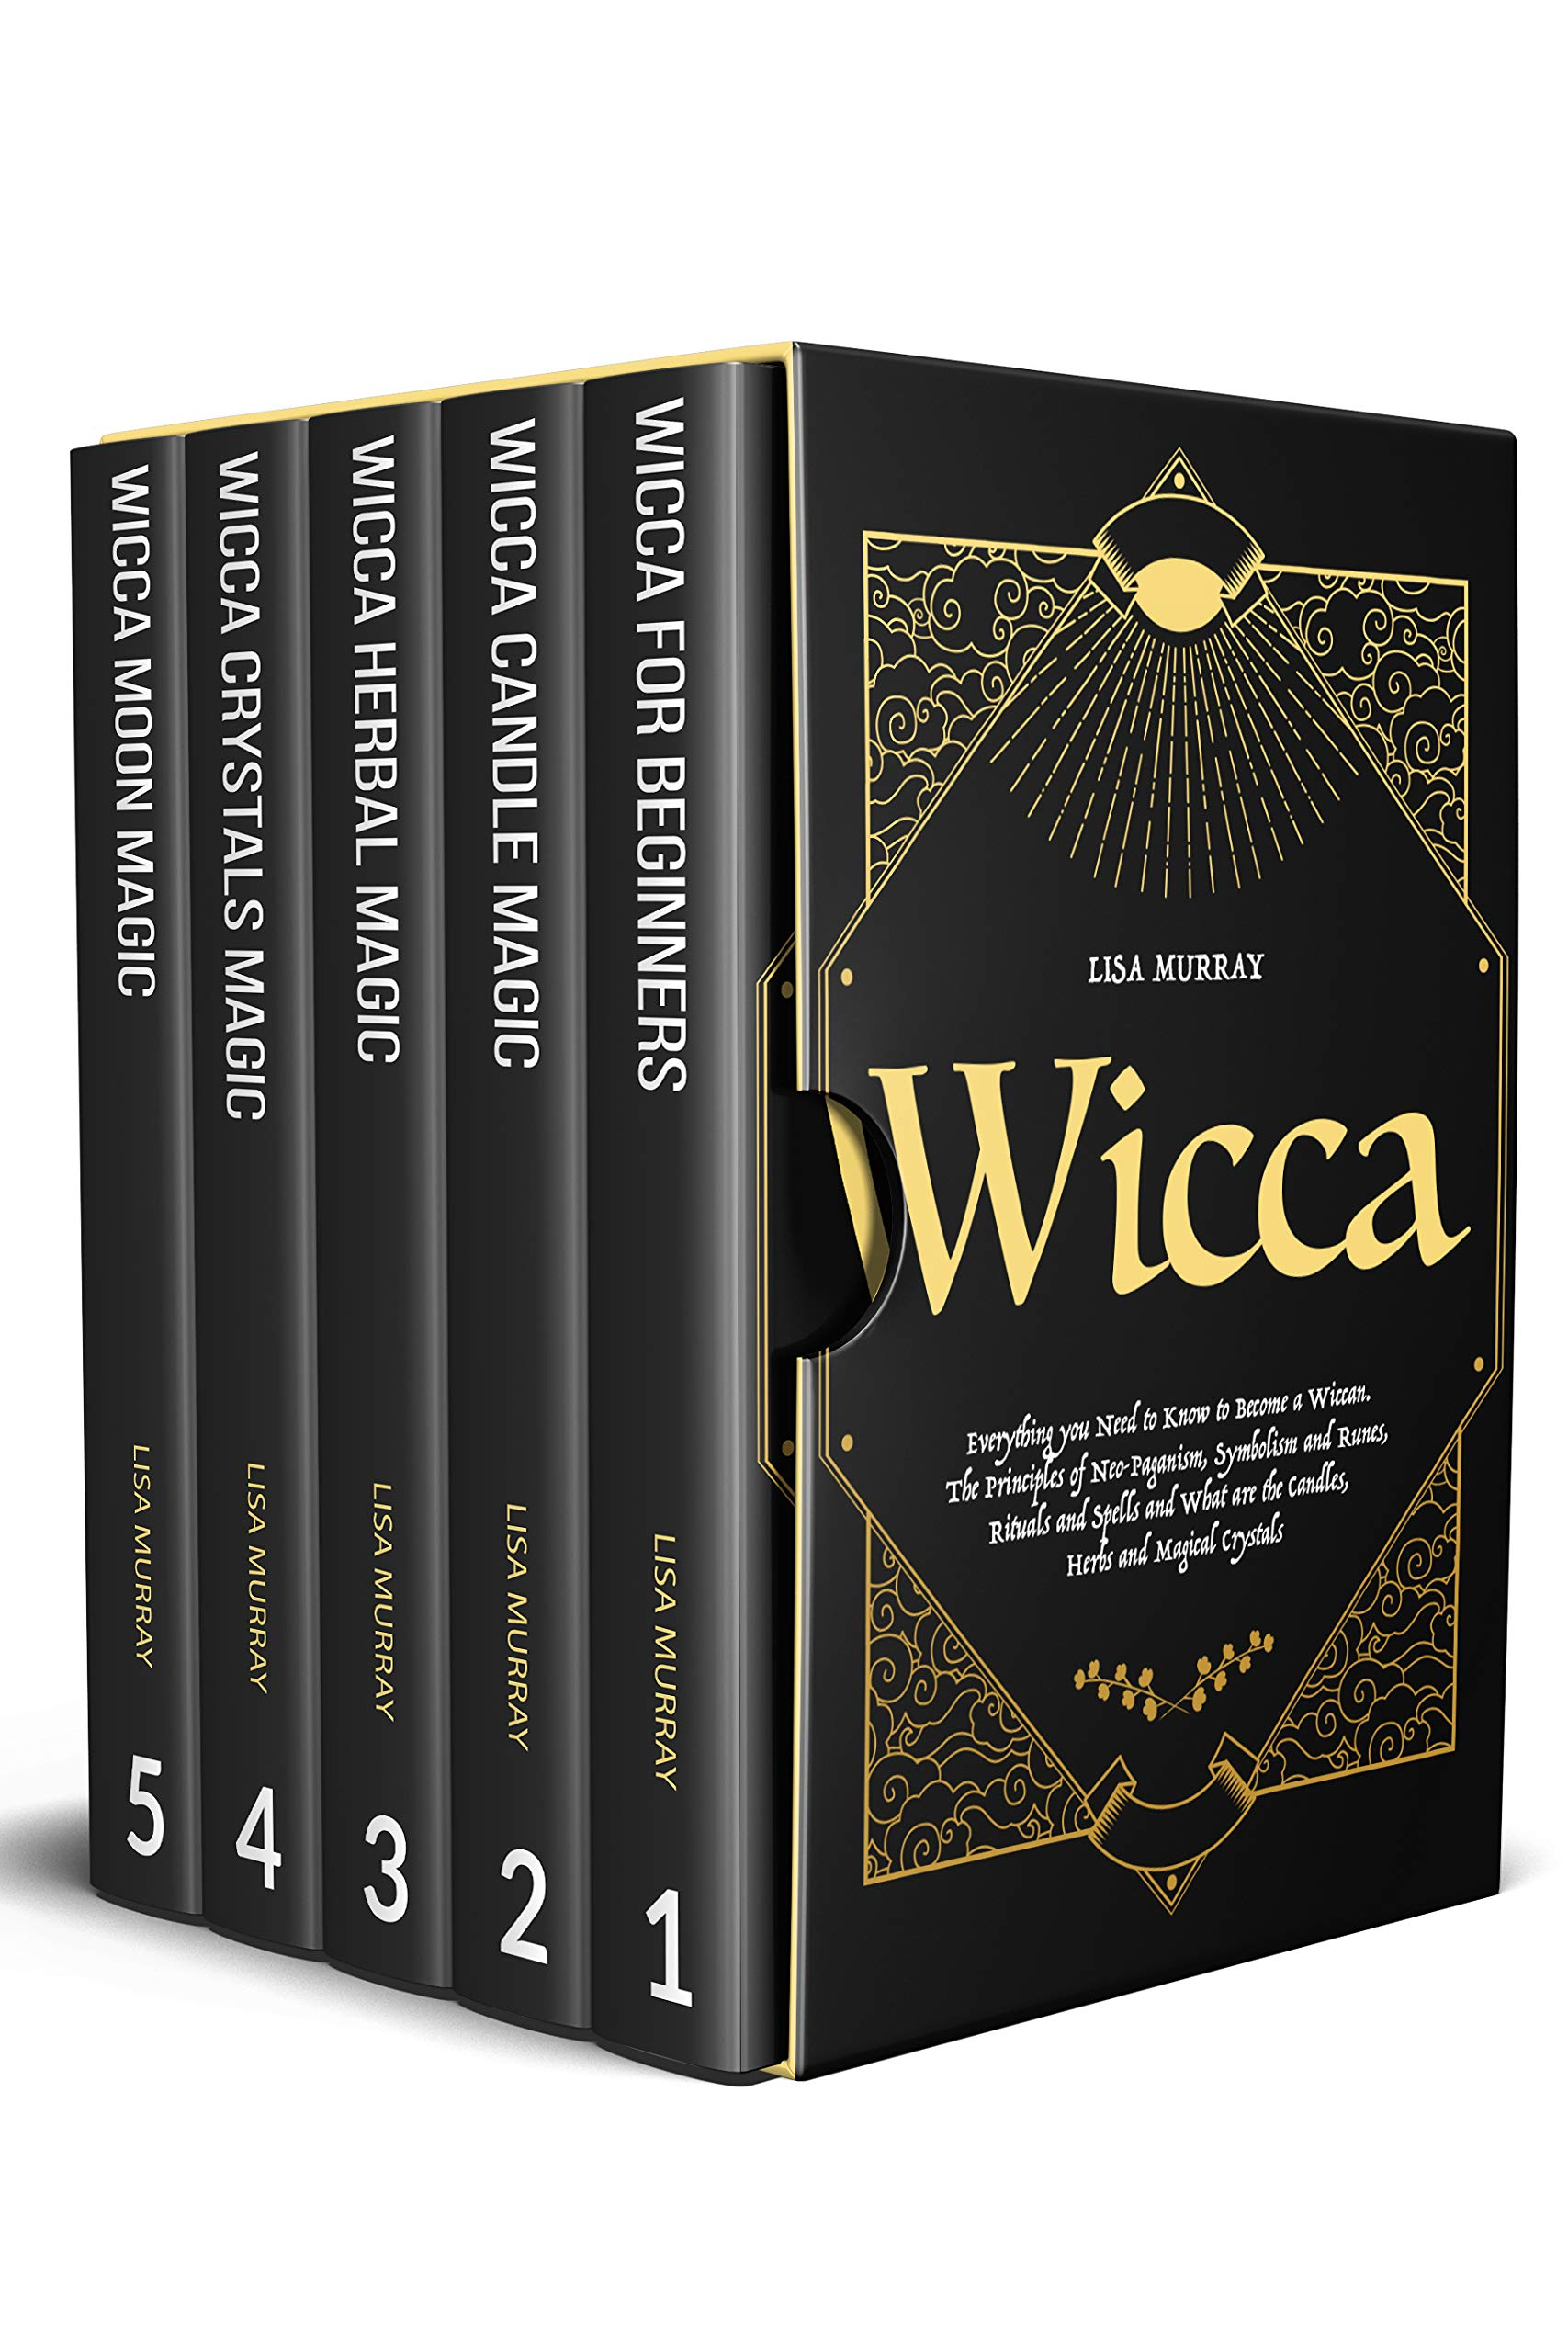 WICCA: Everything you Need to Know to Become a Wiccan. The Principles of Neo-Paganism, Symbolism and Runes, Rituals and Spells and What are the Candles, Herbs and Magical Crystals